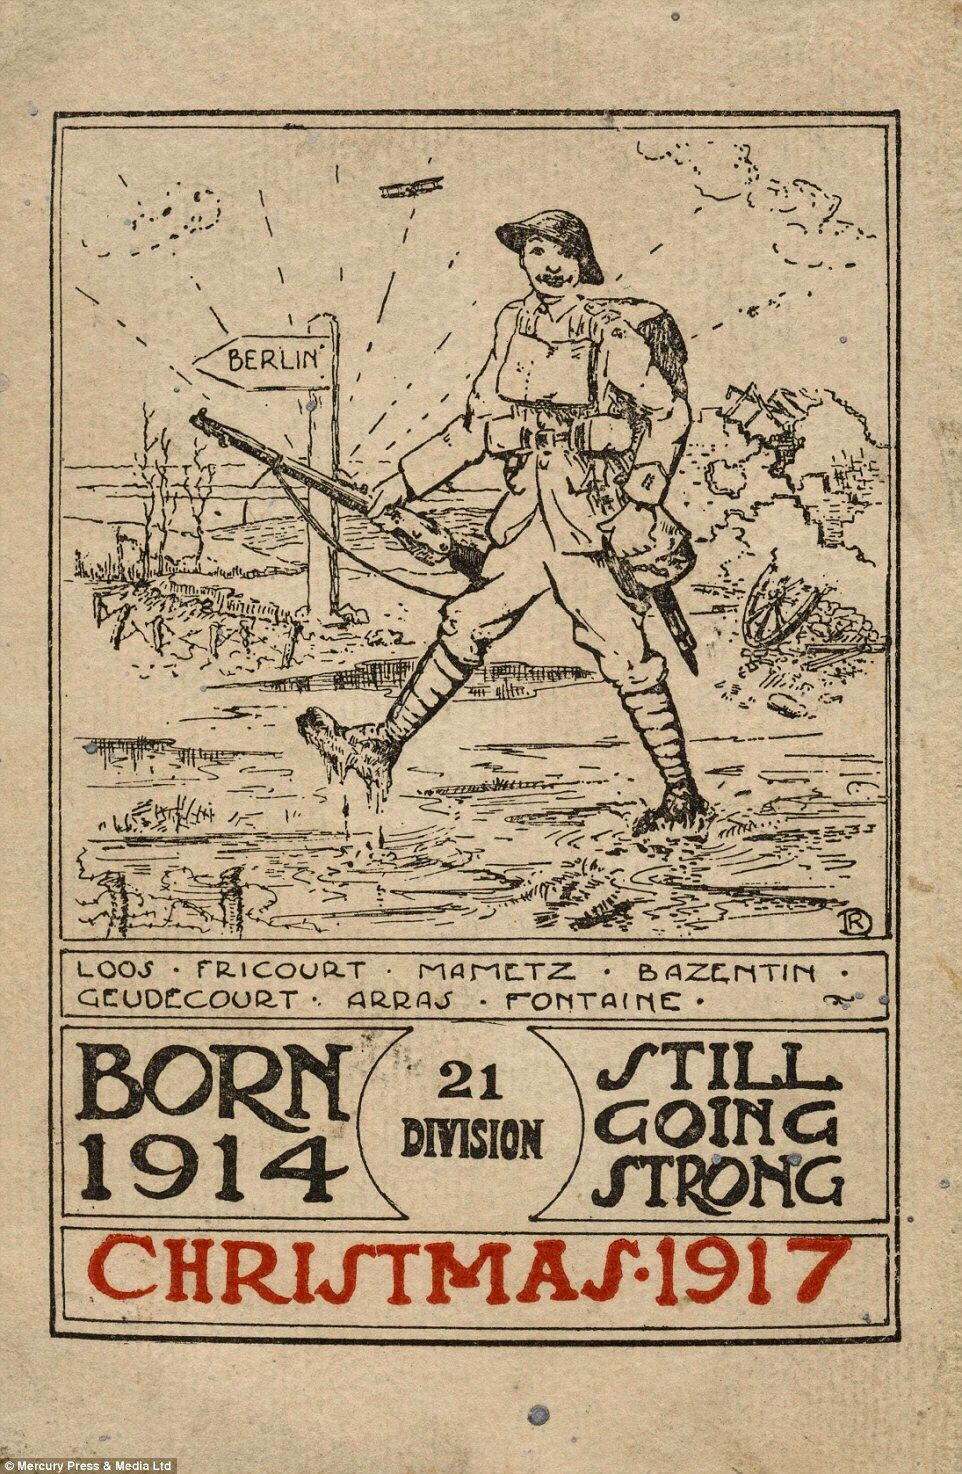 Christmas 1917 (With images) Military greeting card